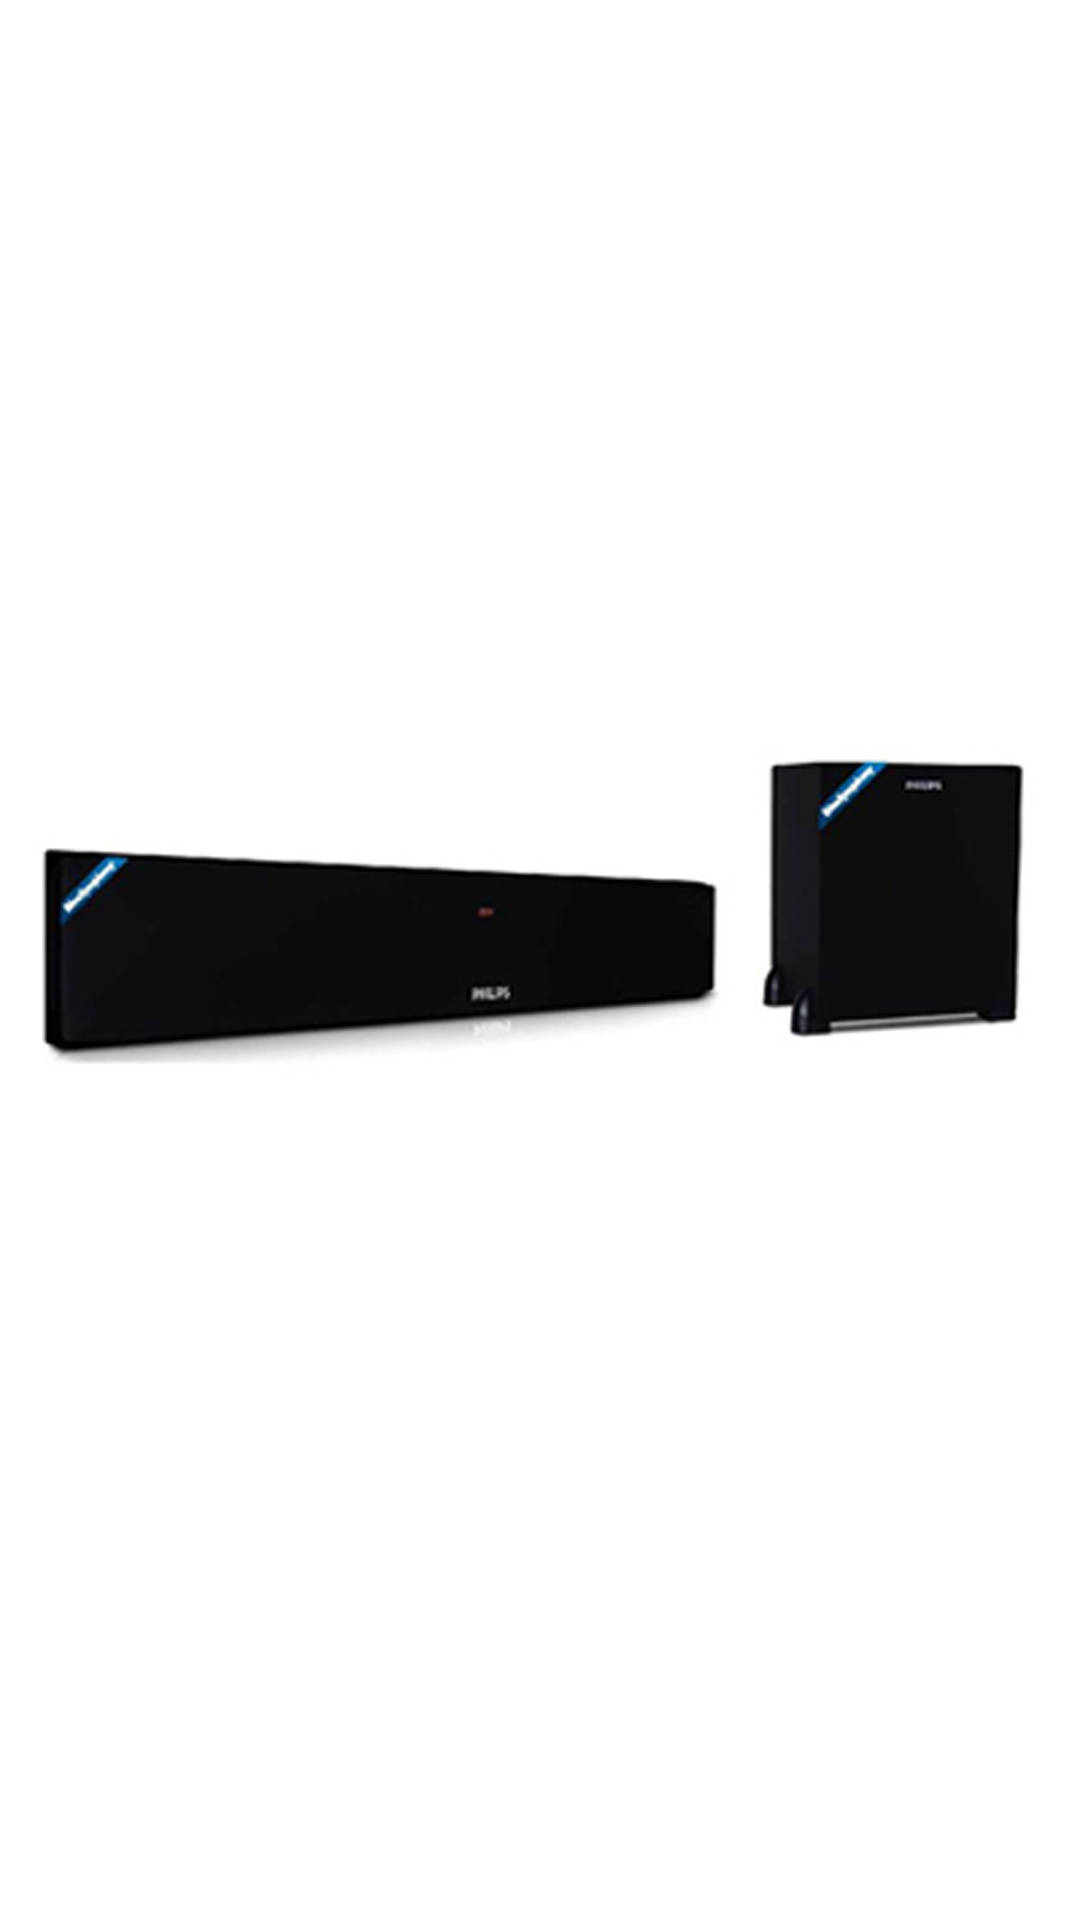 Philips DSP470U Soundbar (2.1 Channel)